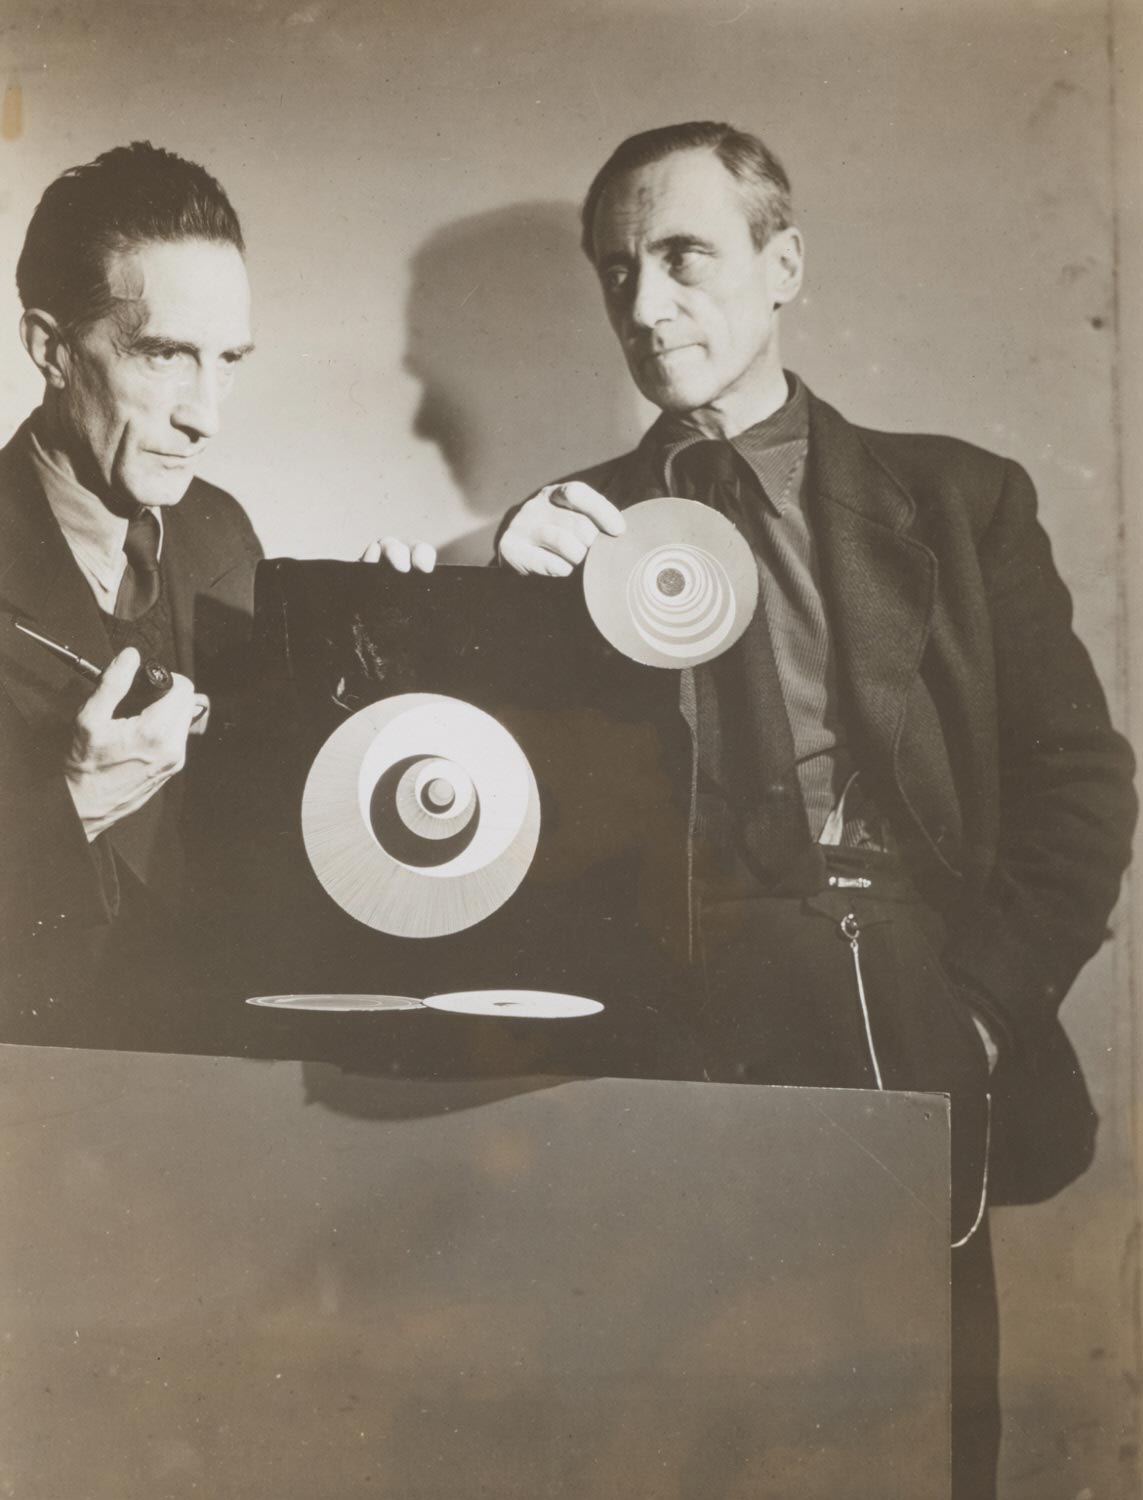 Marcel Duchamp and Hans Richter with Rotoreliefs